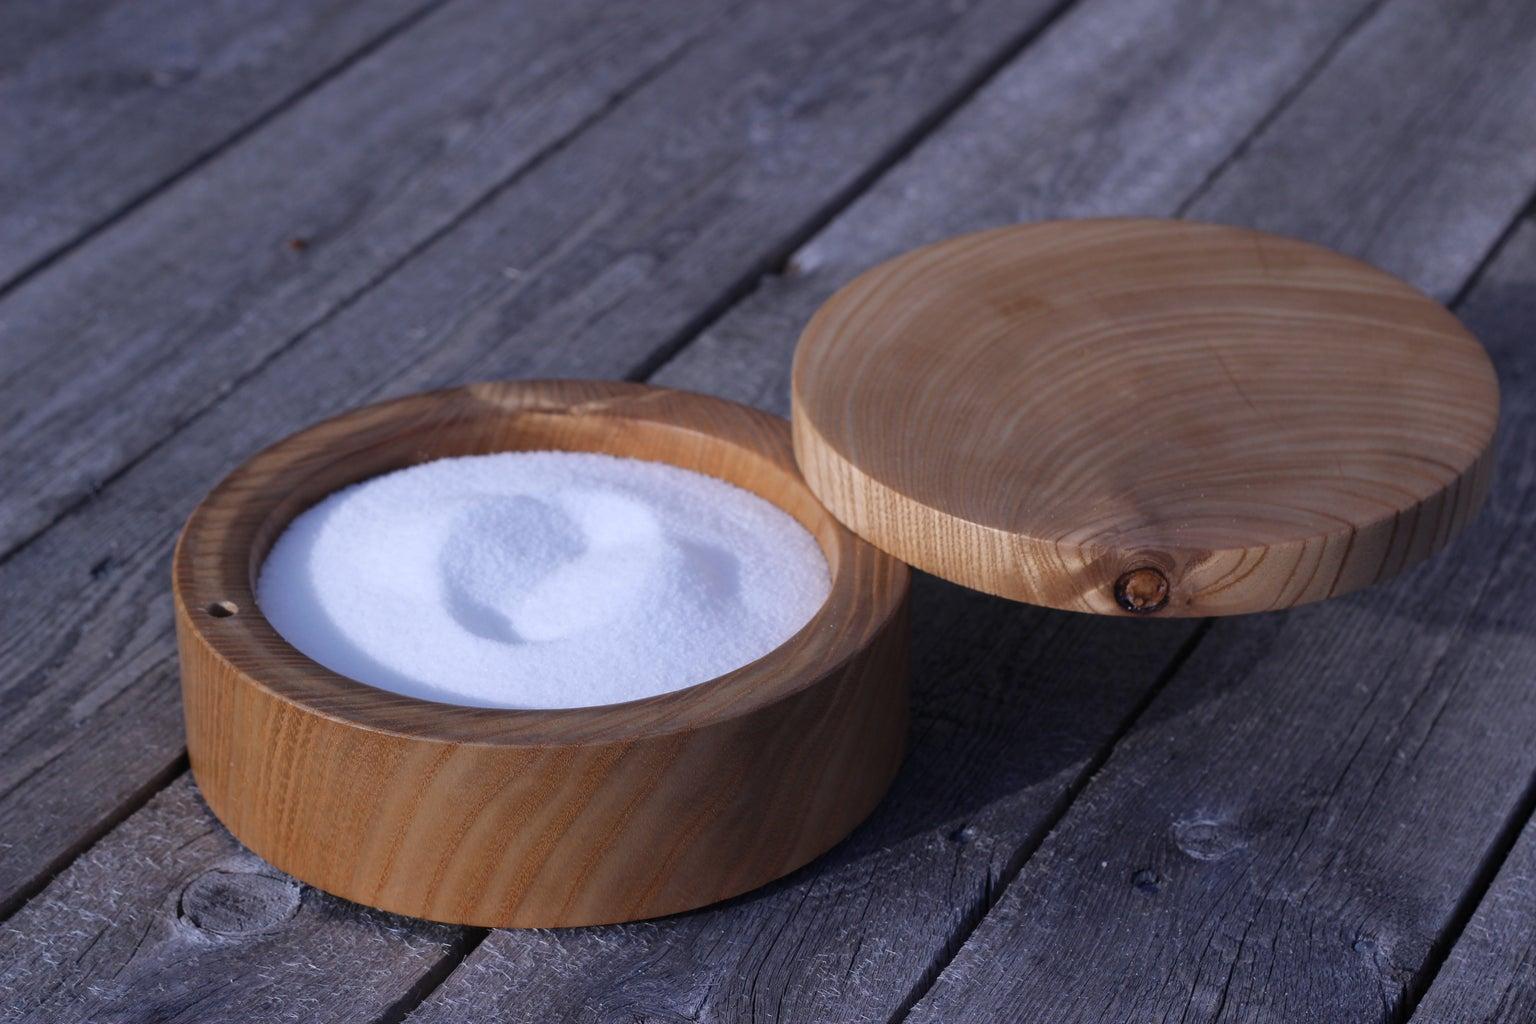 Salt Cellar With a Pivoting Magnetized Lid.